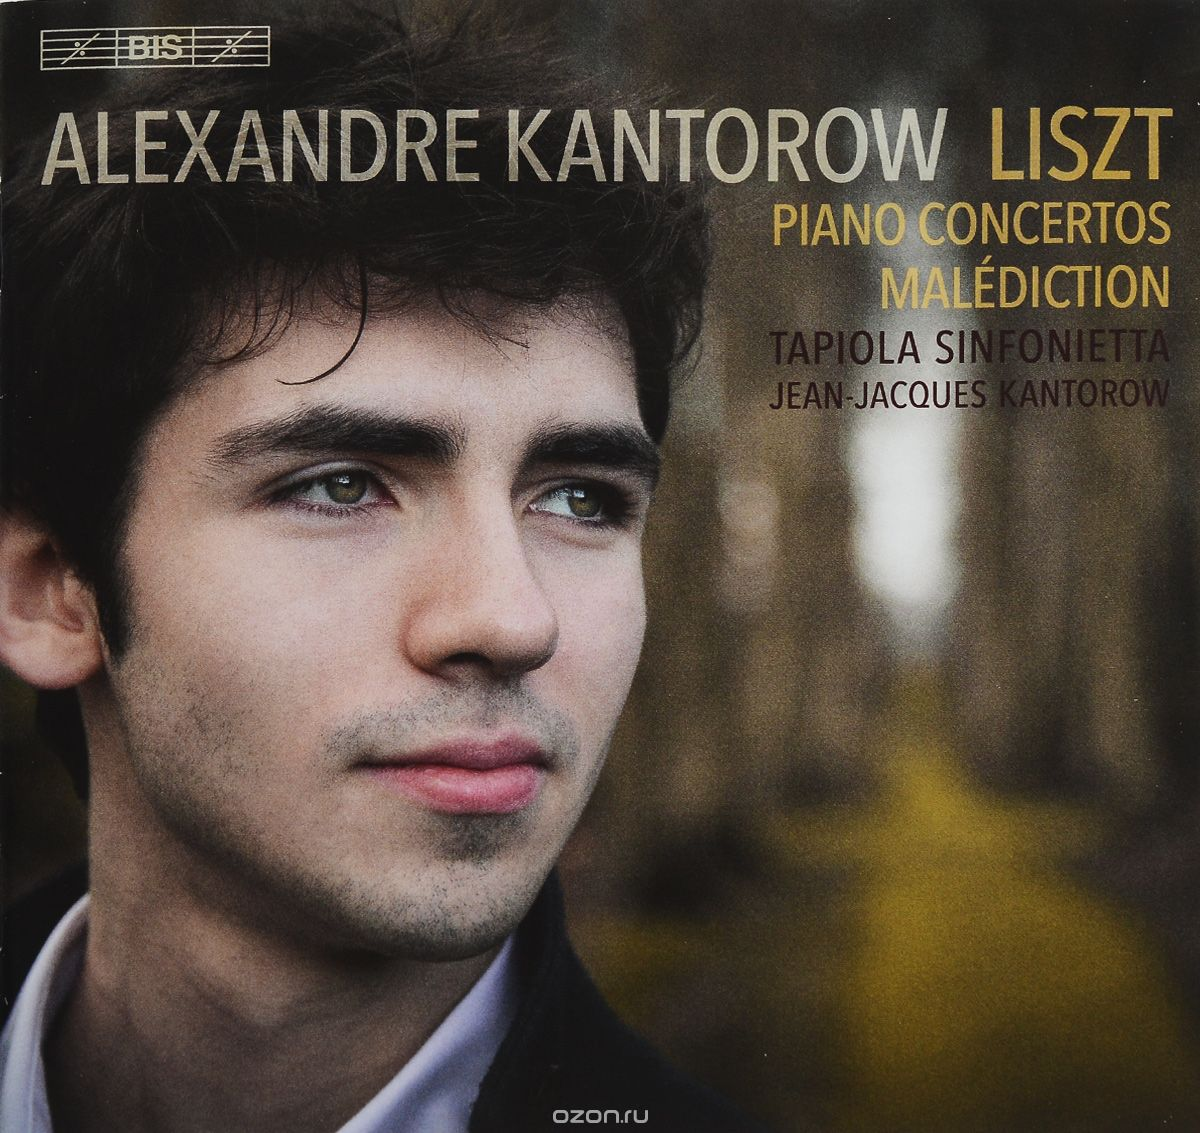 Alexandre Kantorow. Liszt. Piano Concertos. Malediction (SACD)